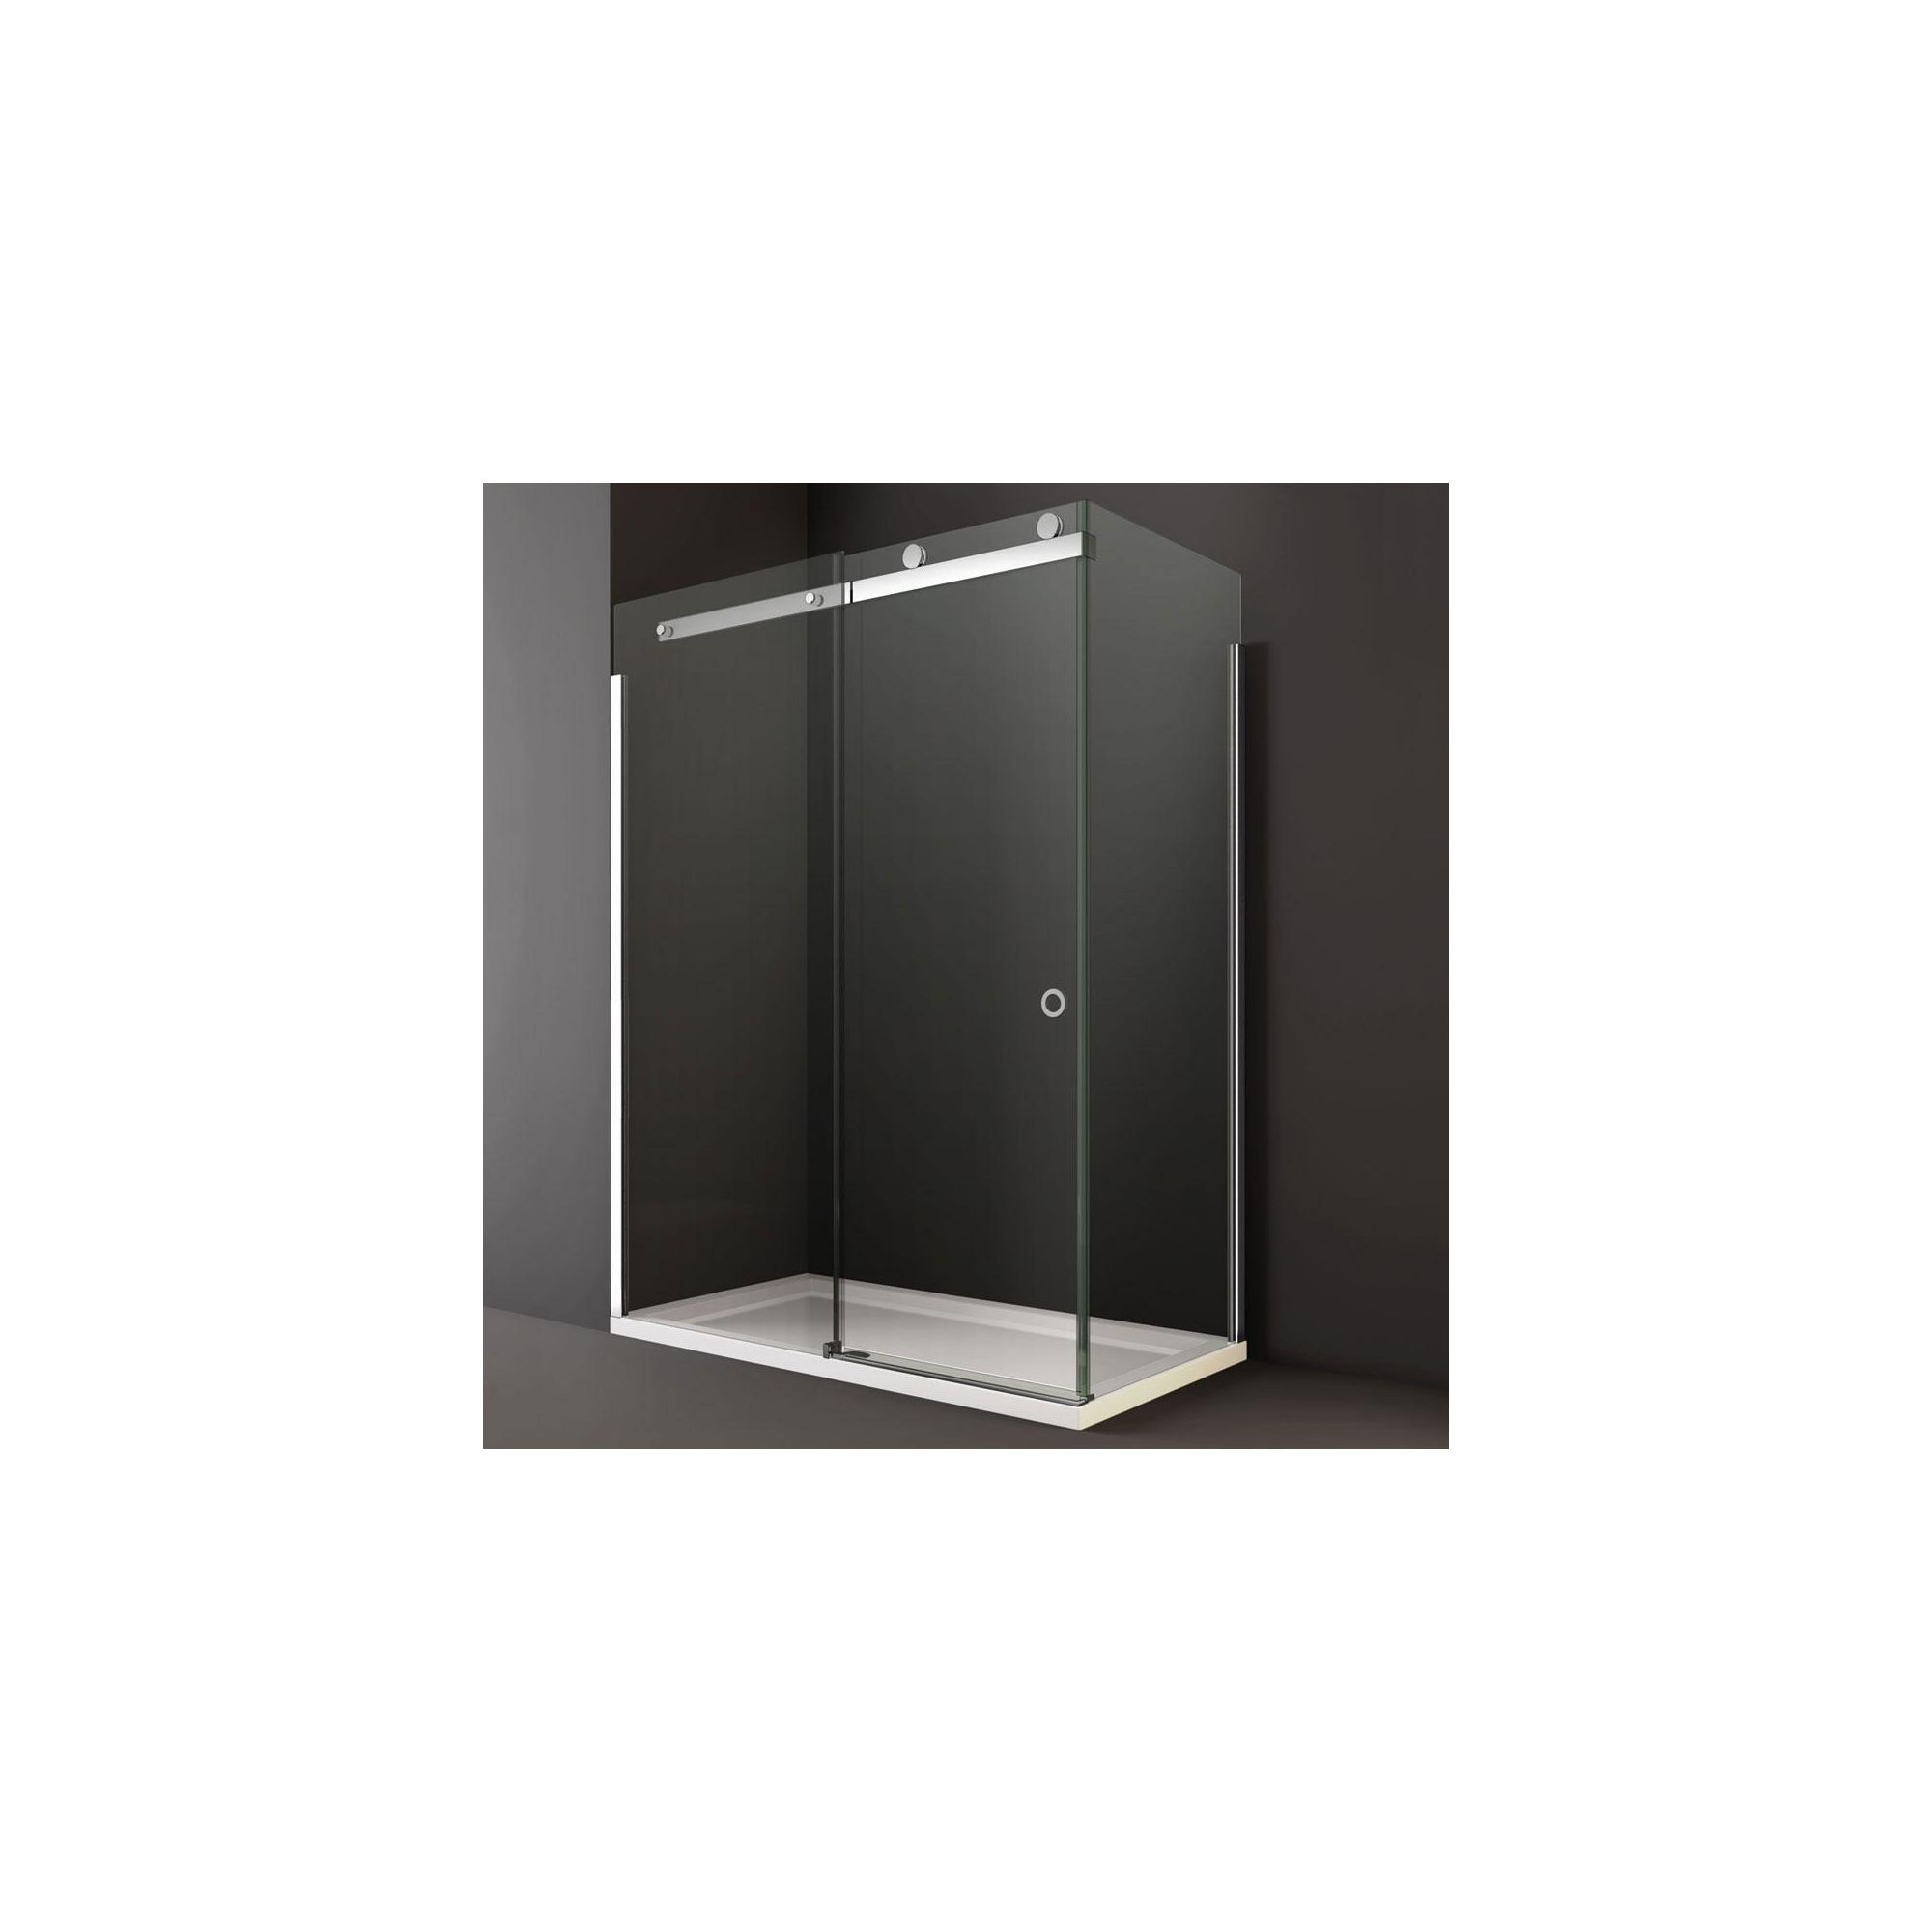 Merlyn Series 10 Sliding Shower Door, 1600mm Wide, 10mm Clear Glass, Left Handed at Tesco Direct